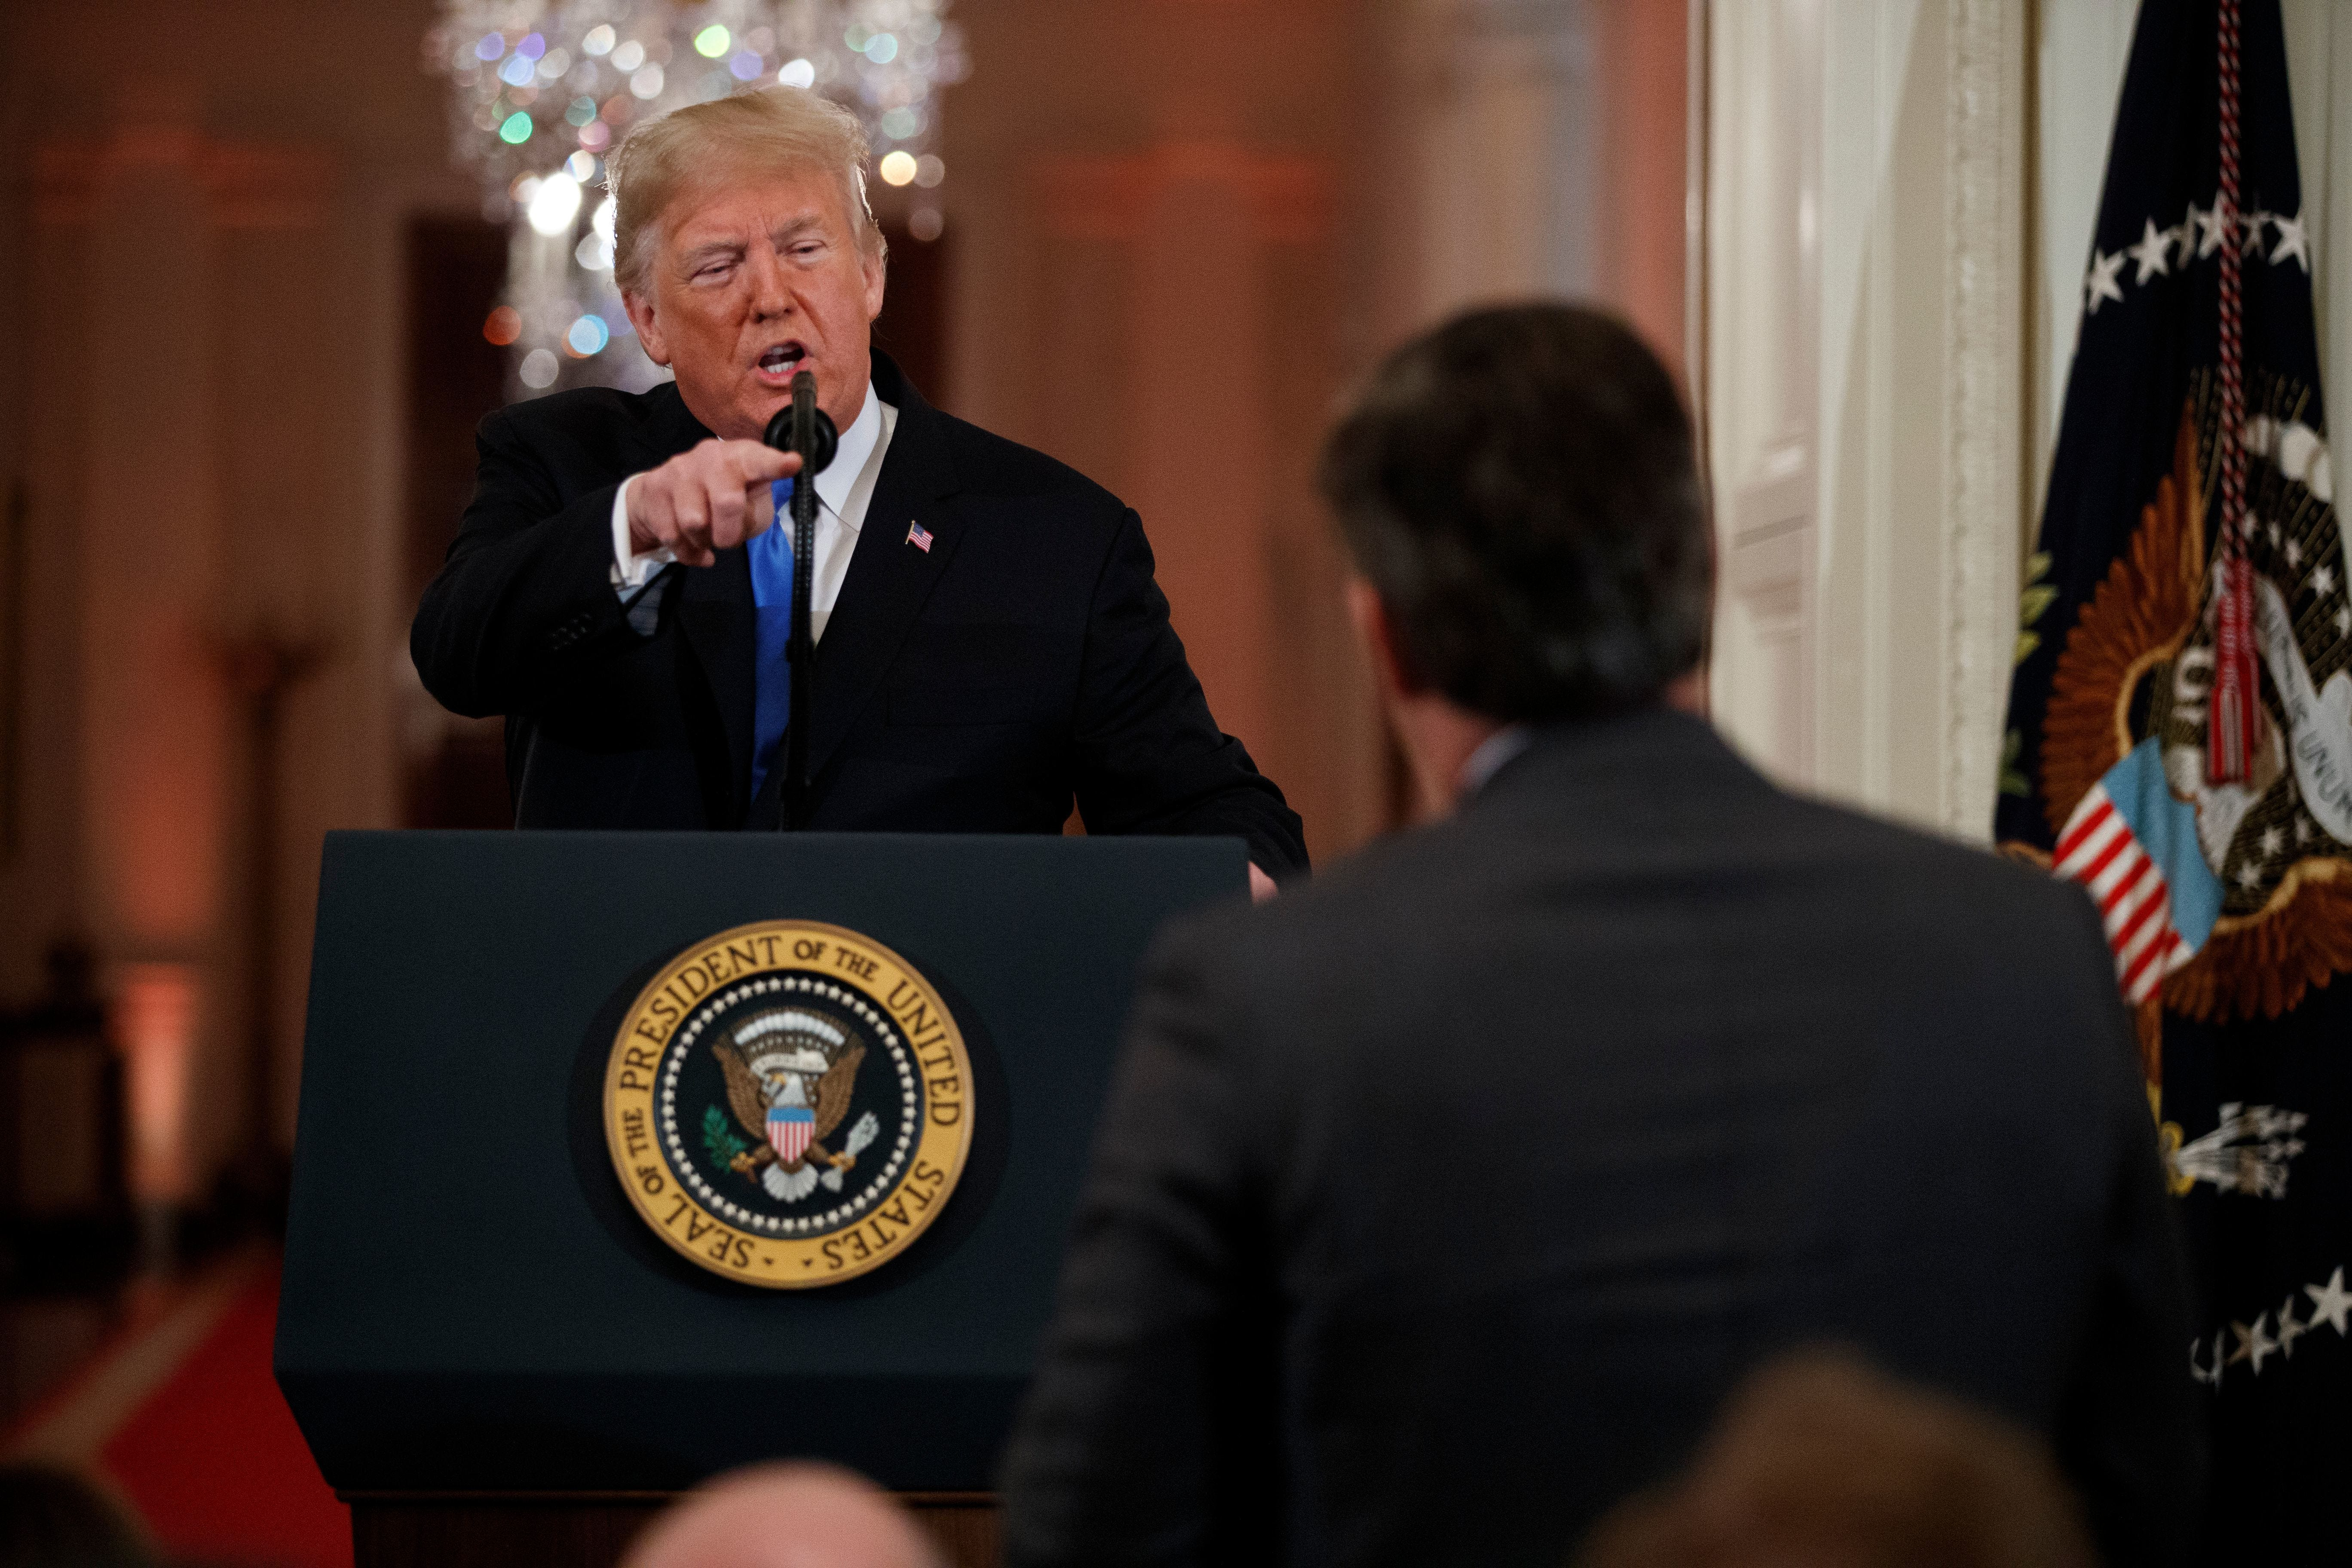 Trump squabbles with CNN s Jim Acosta over Russia coverage during news conference in India